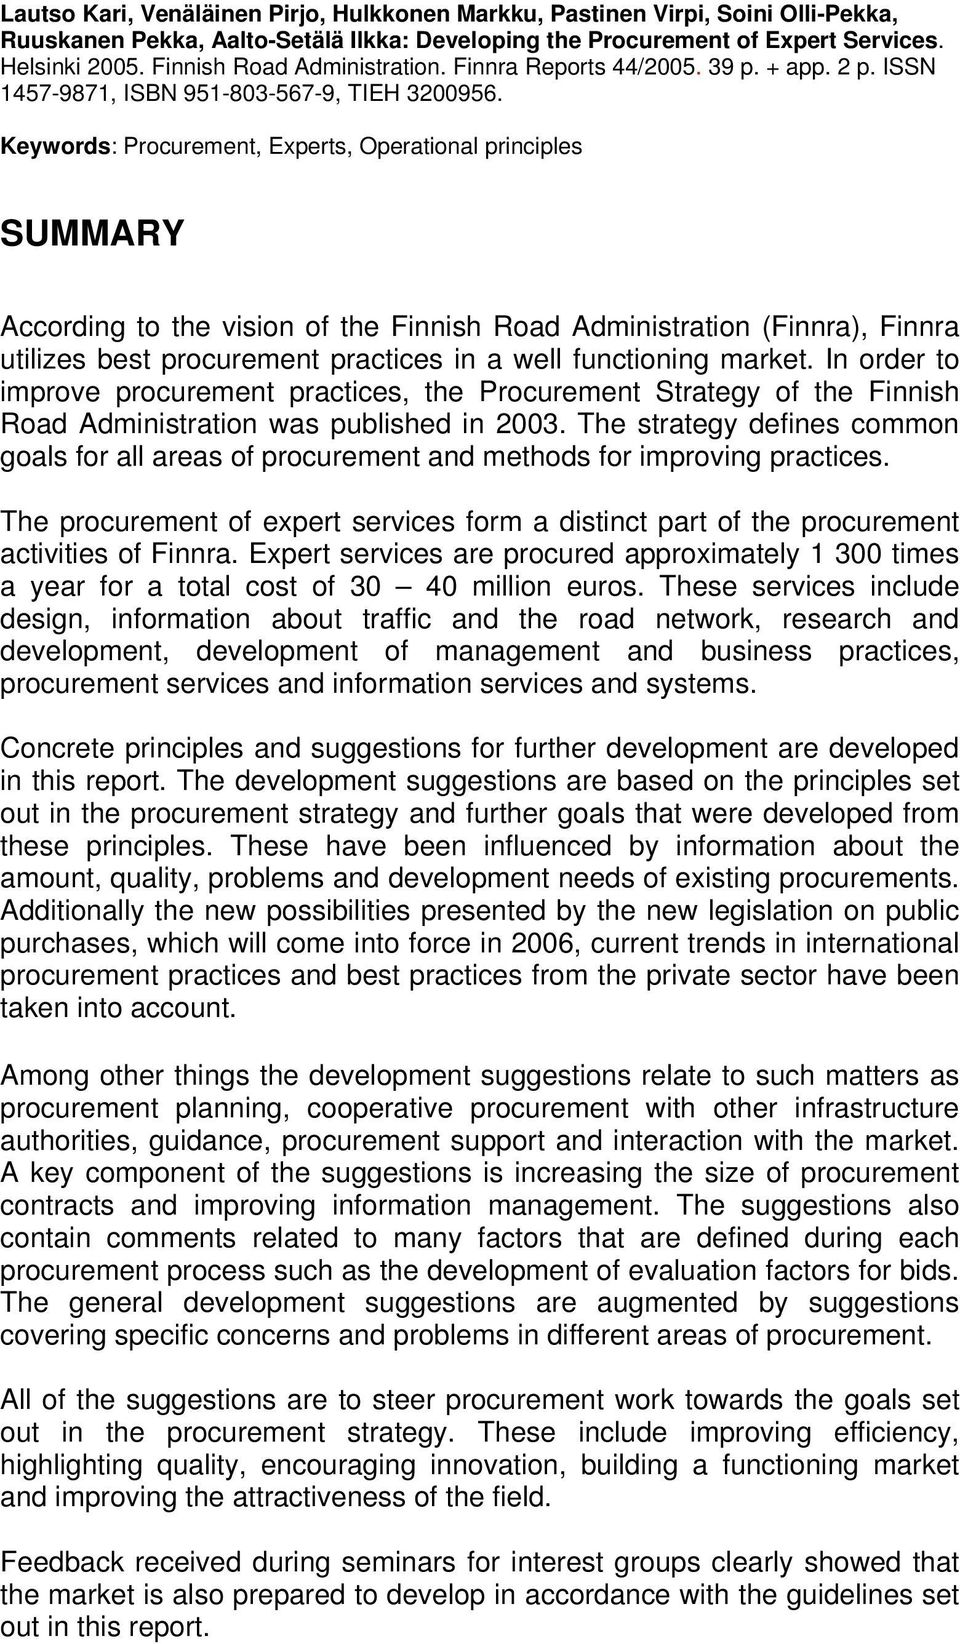 Keywords: Procurement, Experts, Operational principles SUMMARY According to the vision of the Finnish Road Administration (Finnra), Finnra utilizes best procurement practices in a well functioning